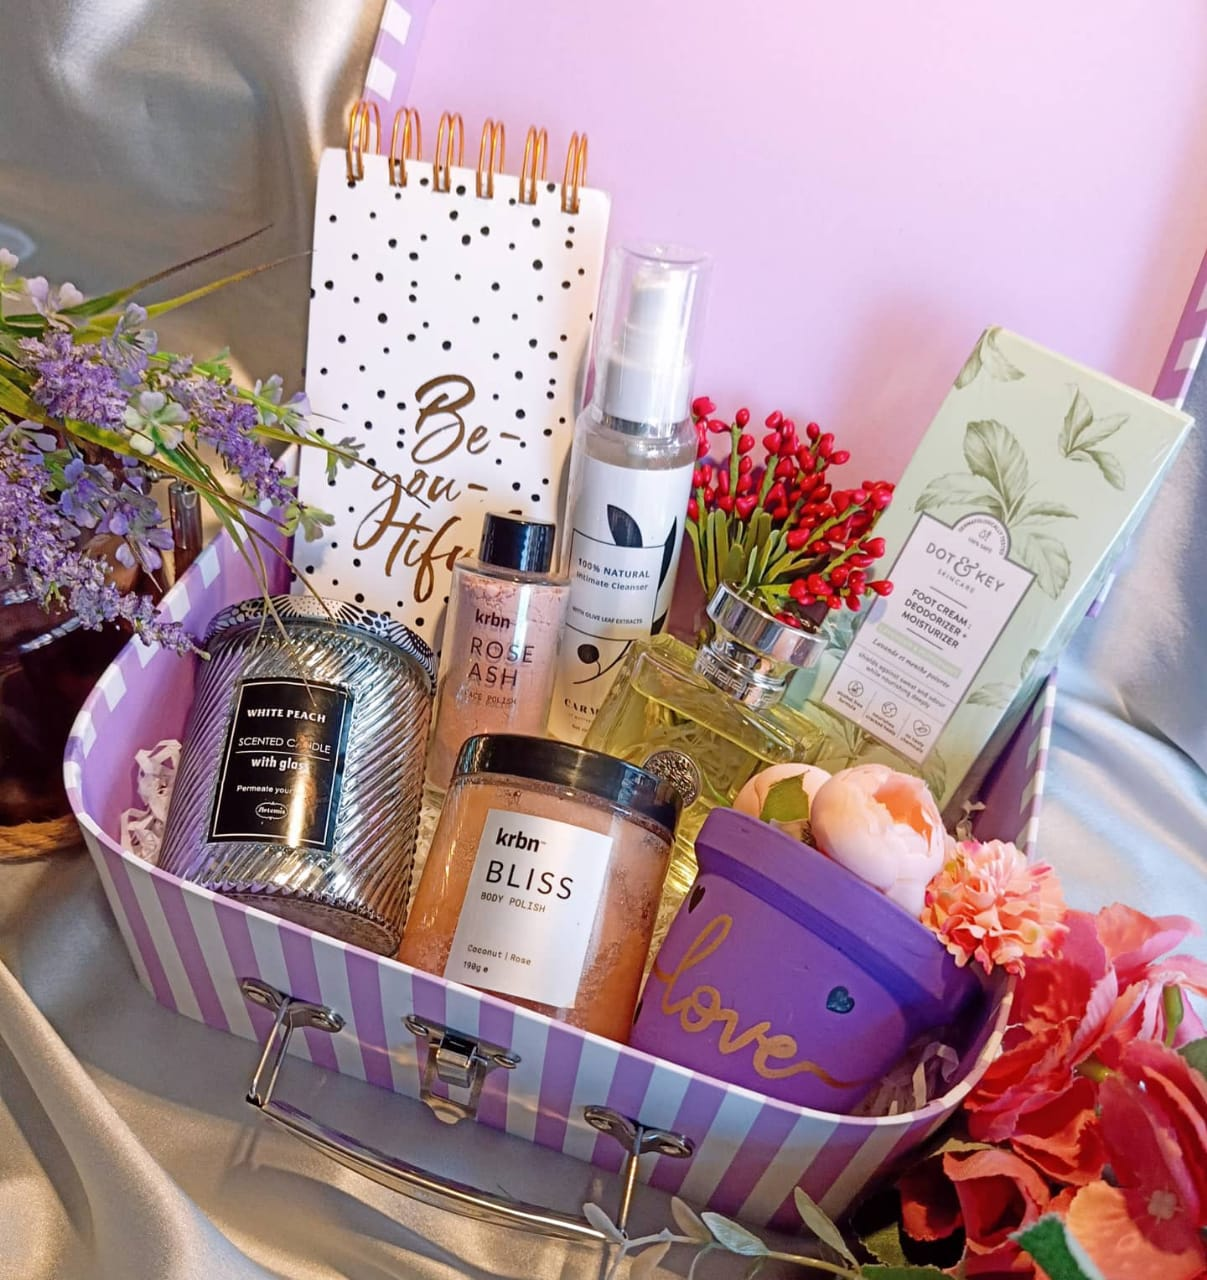 Head To Teal Lush In Mumbai For Some Amazing Wedding Gift Hampers